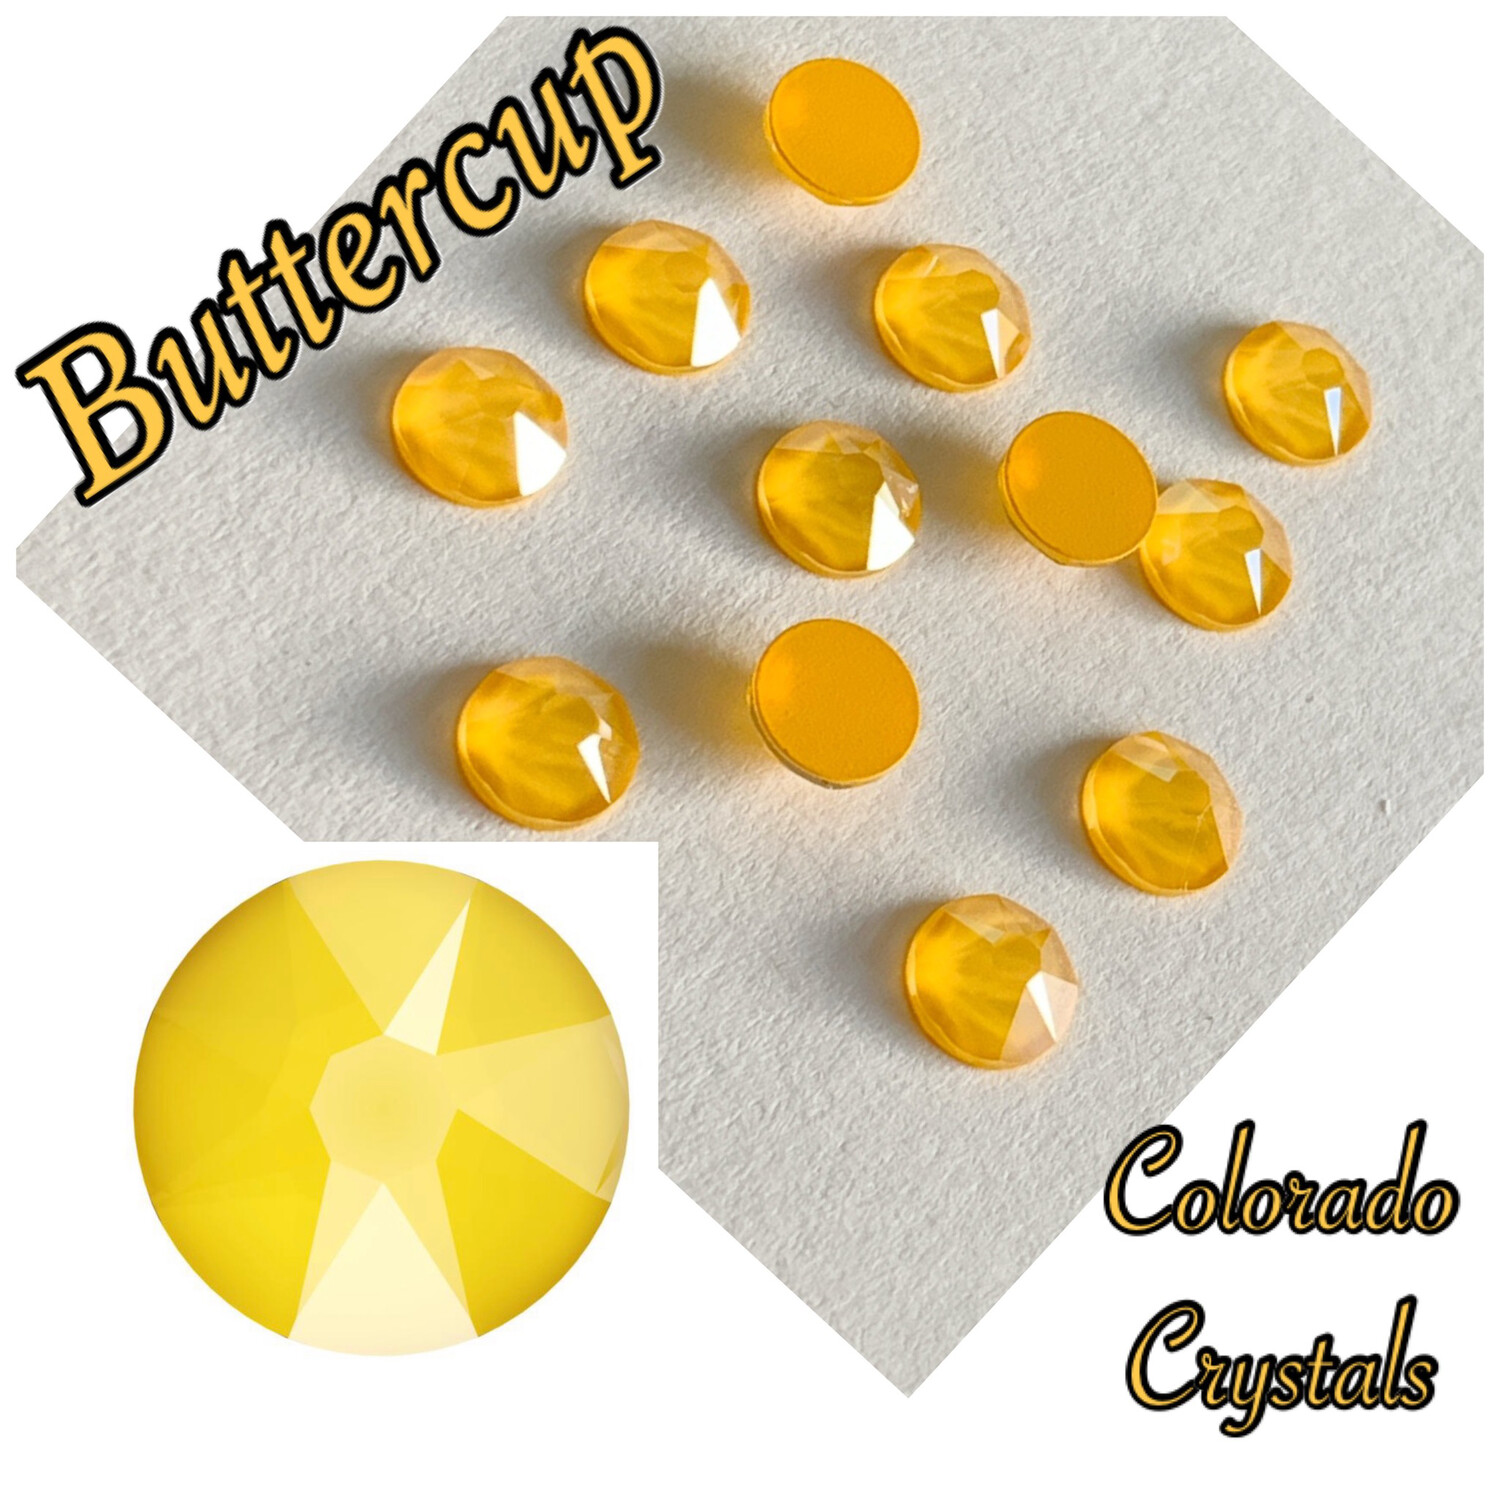 Buttercup (Crystal) 30ss 2088 Limited